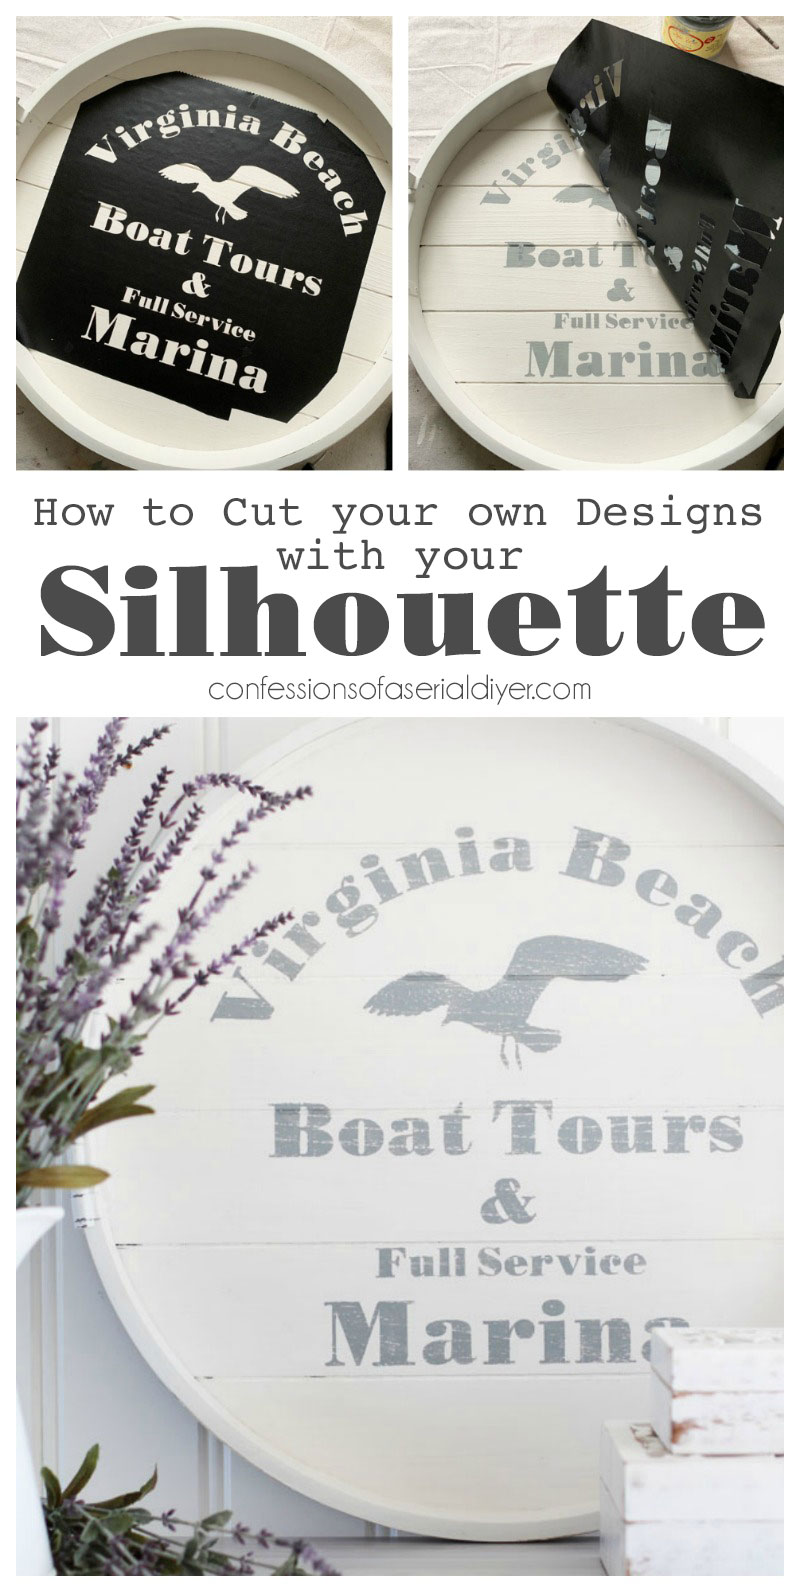 How to cut your own designs with your Silhouette